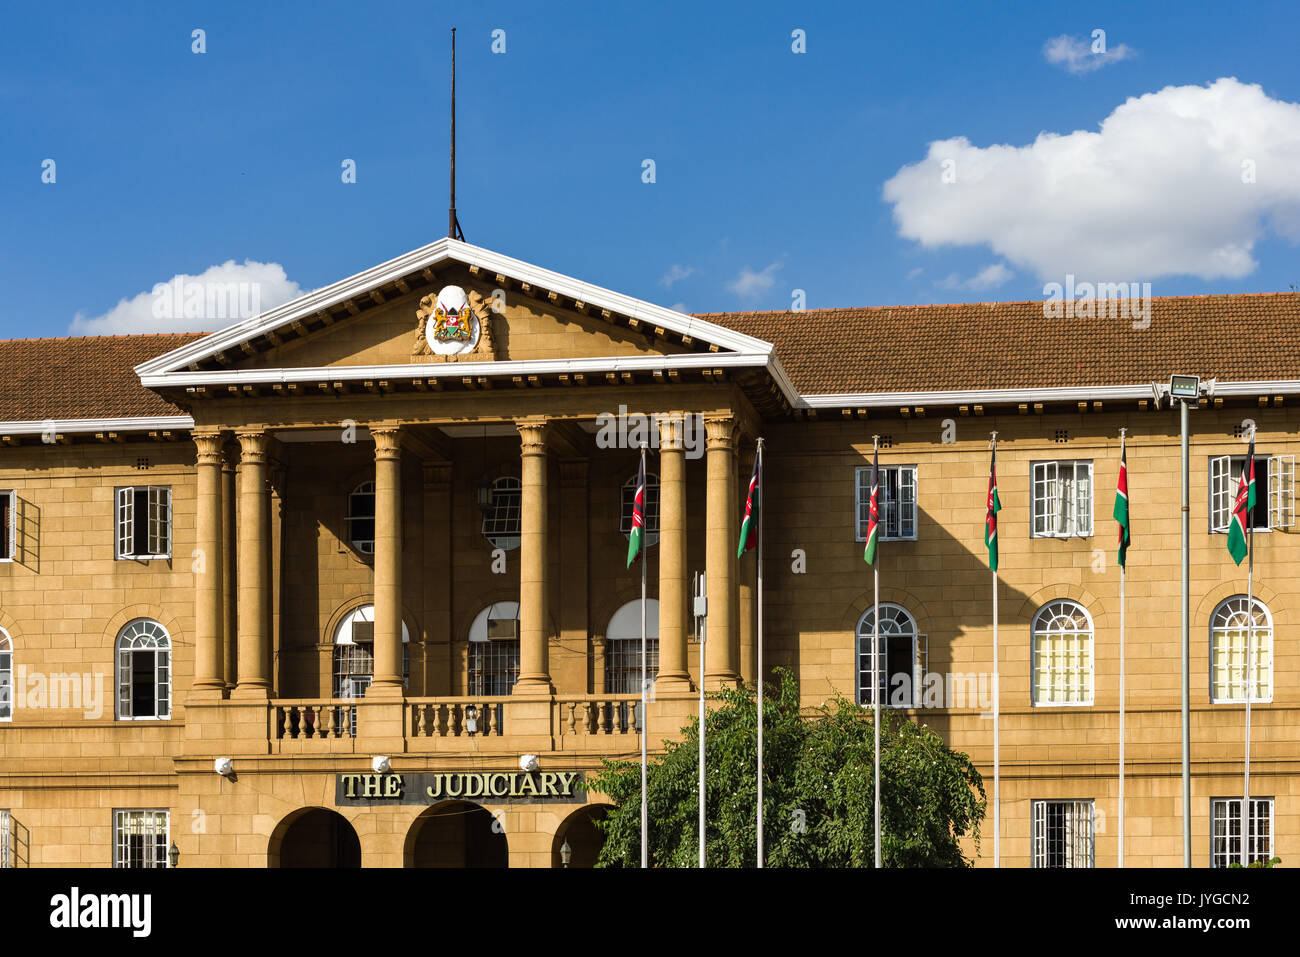 The Supreme Court Judiciary building from KICC square, Nairobi, Kenya Stock Photo